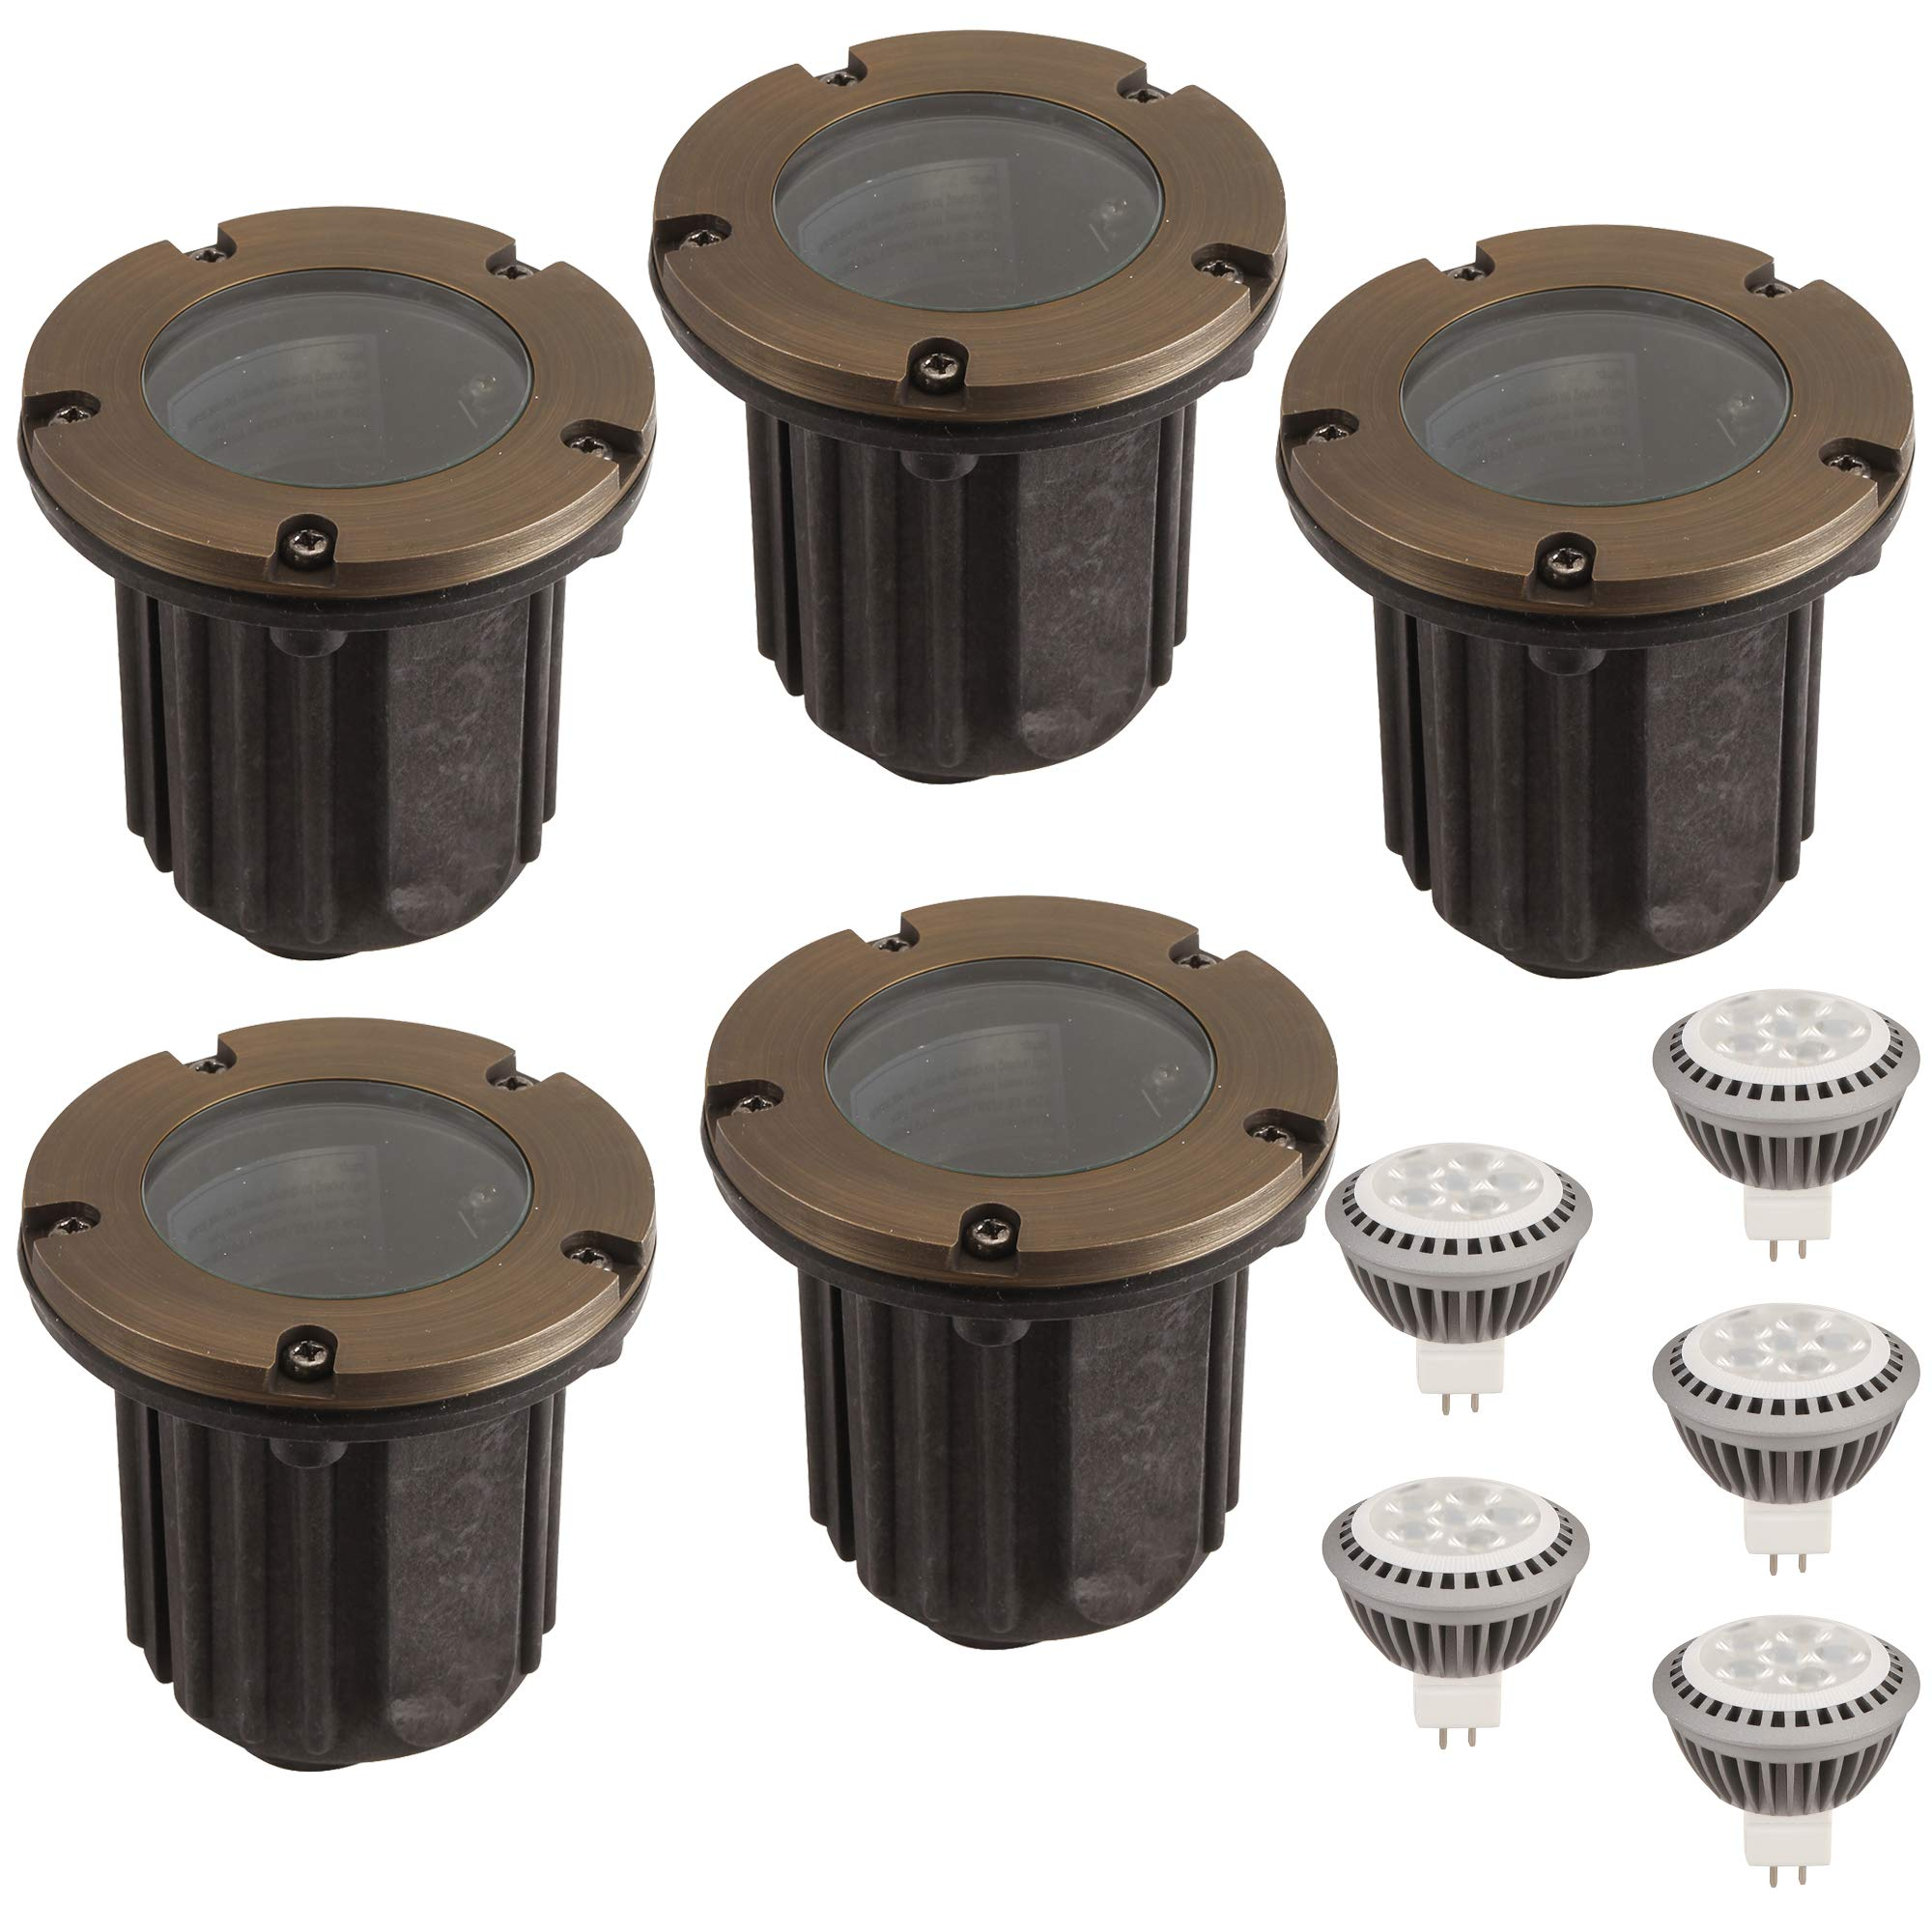 LFU Pack of 5 Solid Cast Brass Constructed Well/In Ground Lights. with 5 LED MR16 3W LED Bulbs. 2700K Warm White. Low Voltage AC DC. Model LF3001AB Vancouver. by Lighting Factory USA